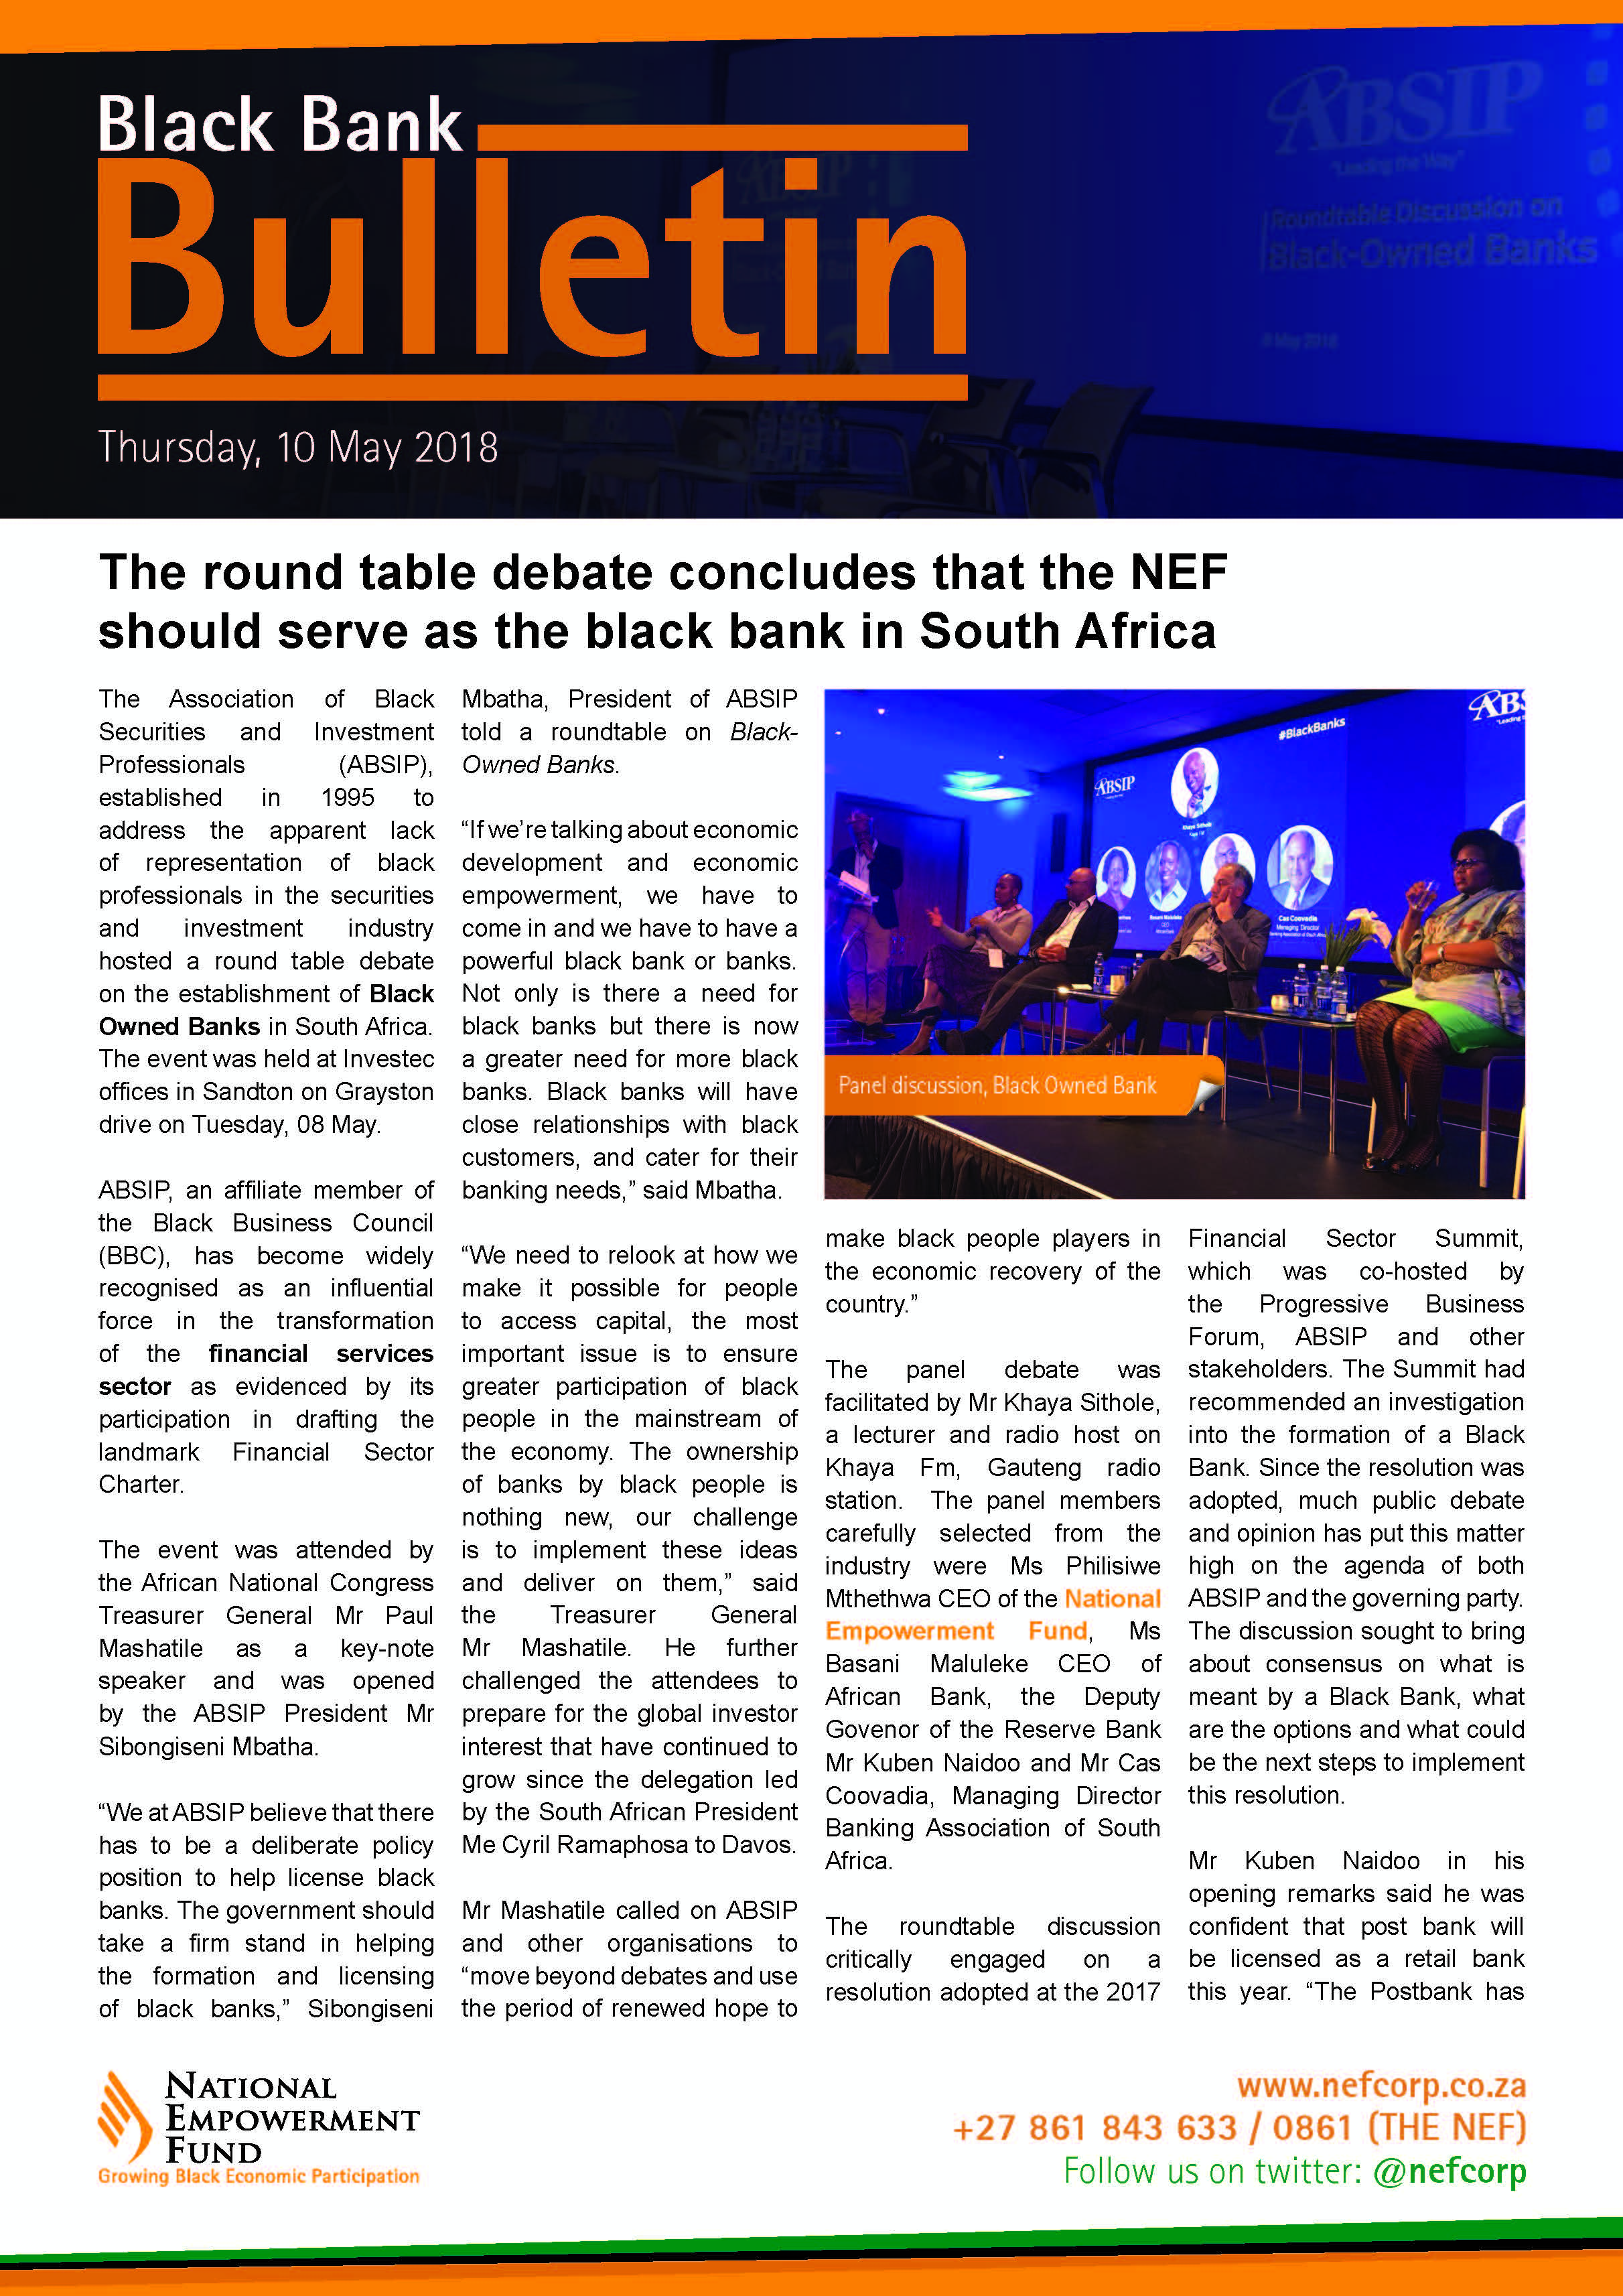 The Round Table Debate Concludes That The NEF Should Serve As The Black Bank In South Africa